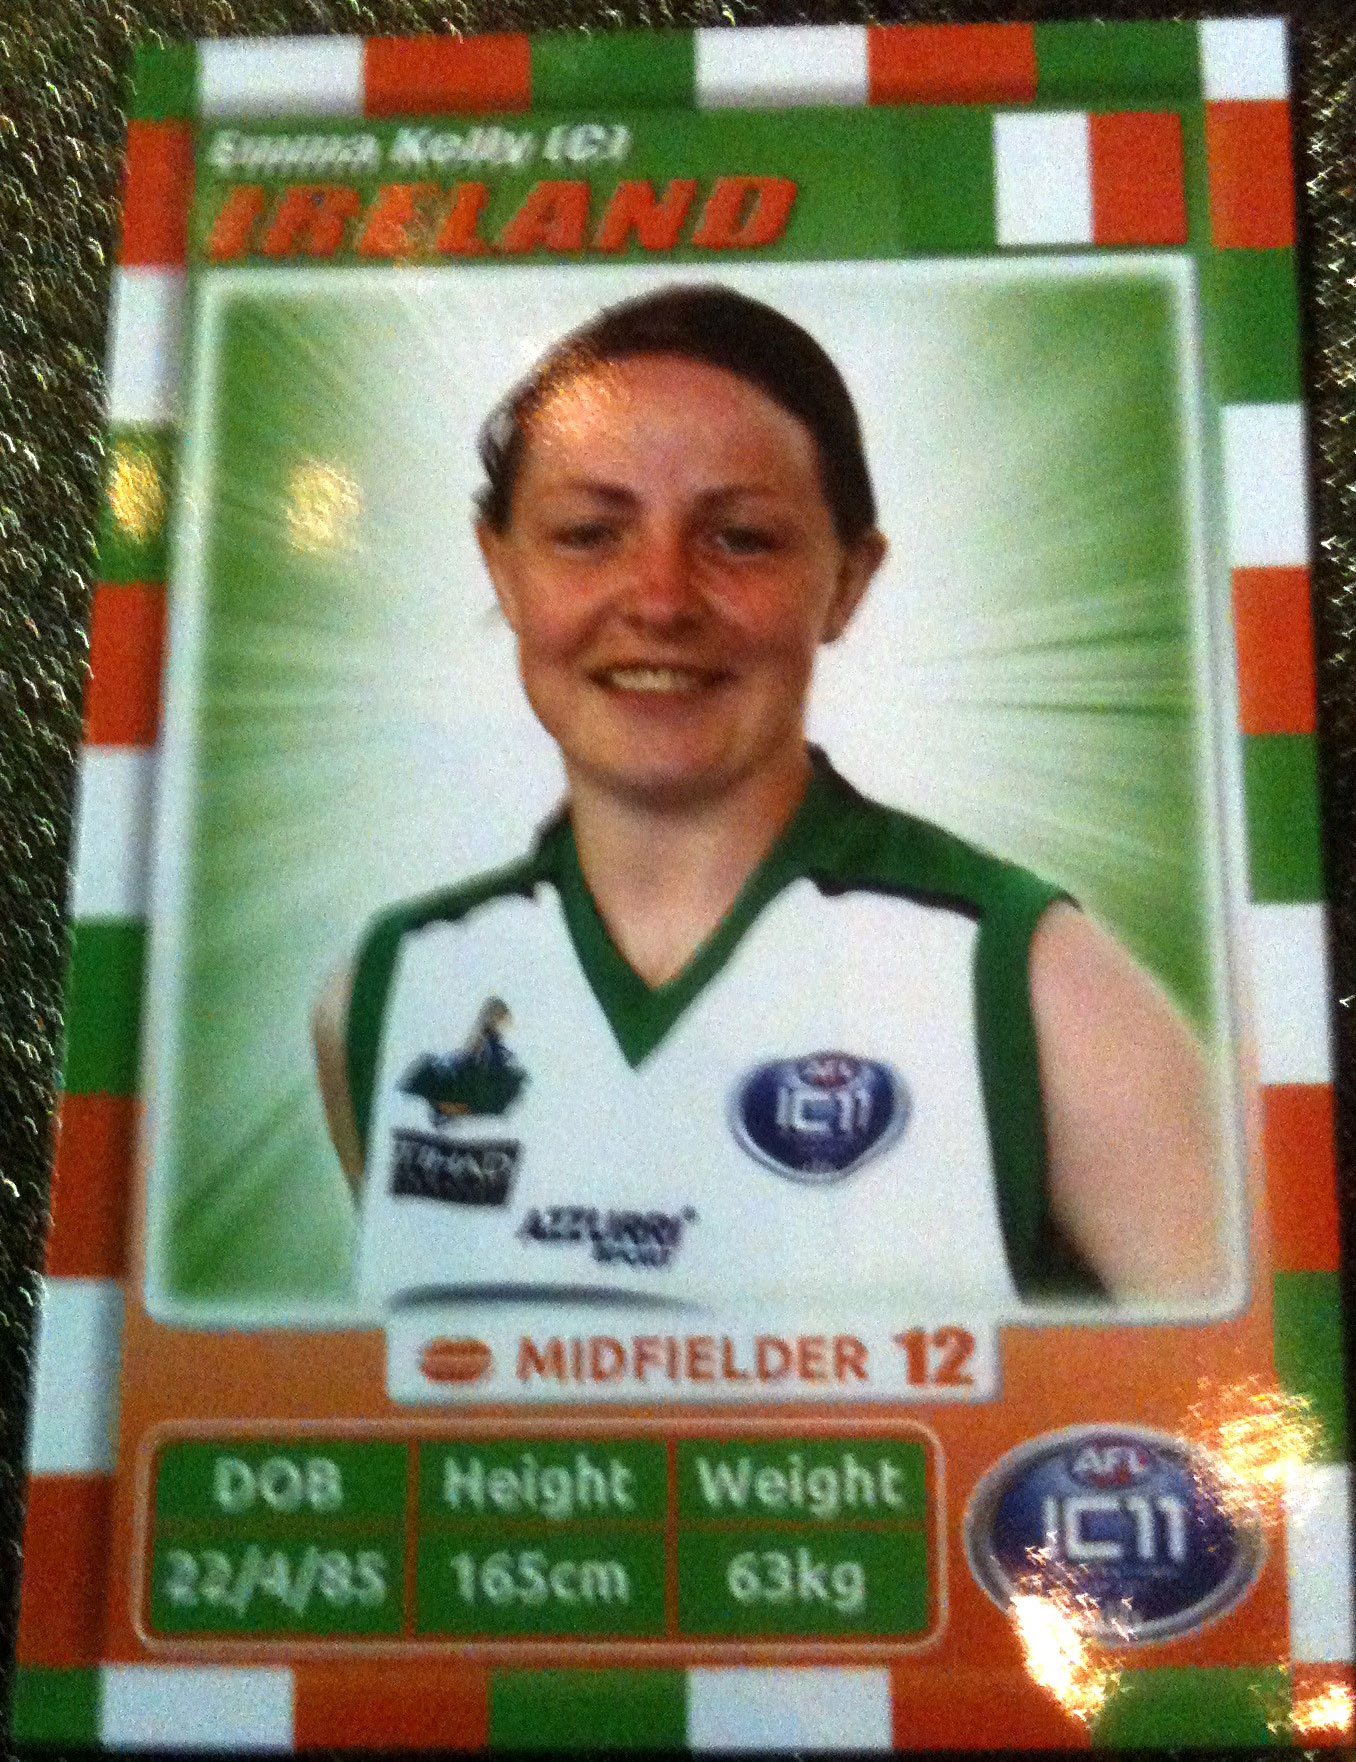 Emma Kelly Irish Banshees AFL